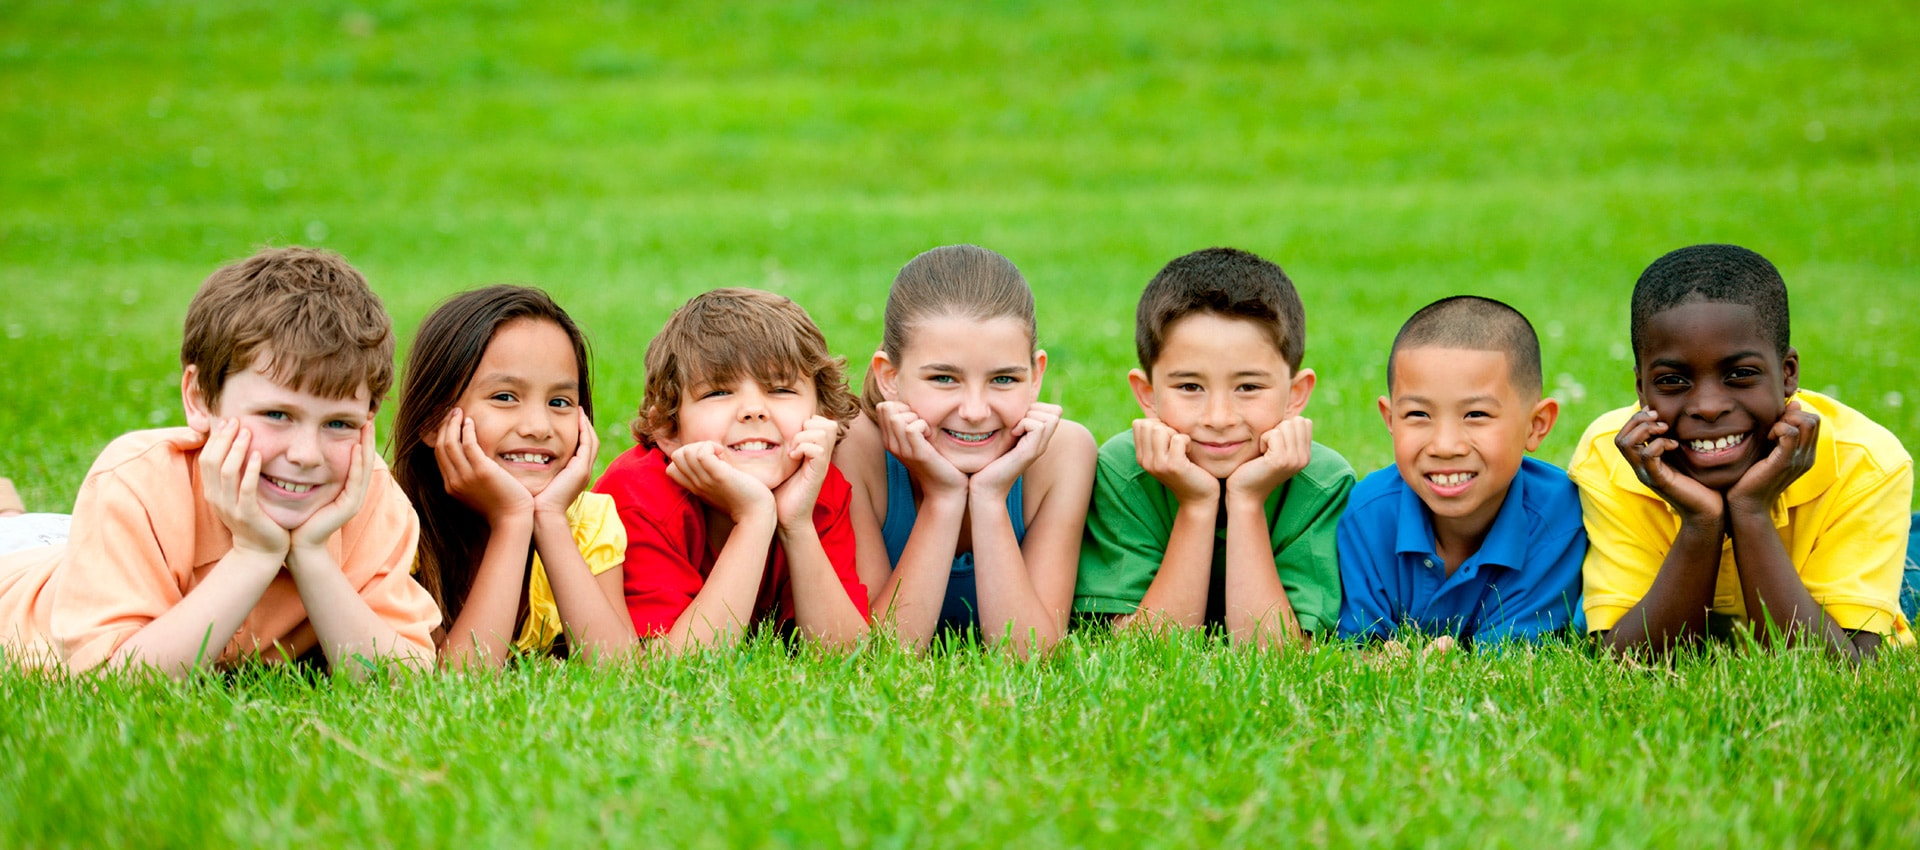 Kids in grass smiling